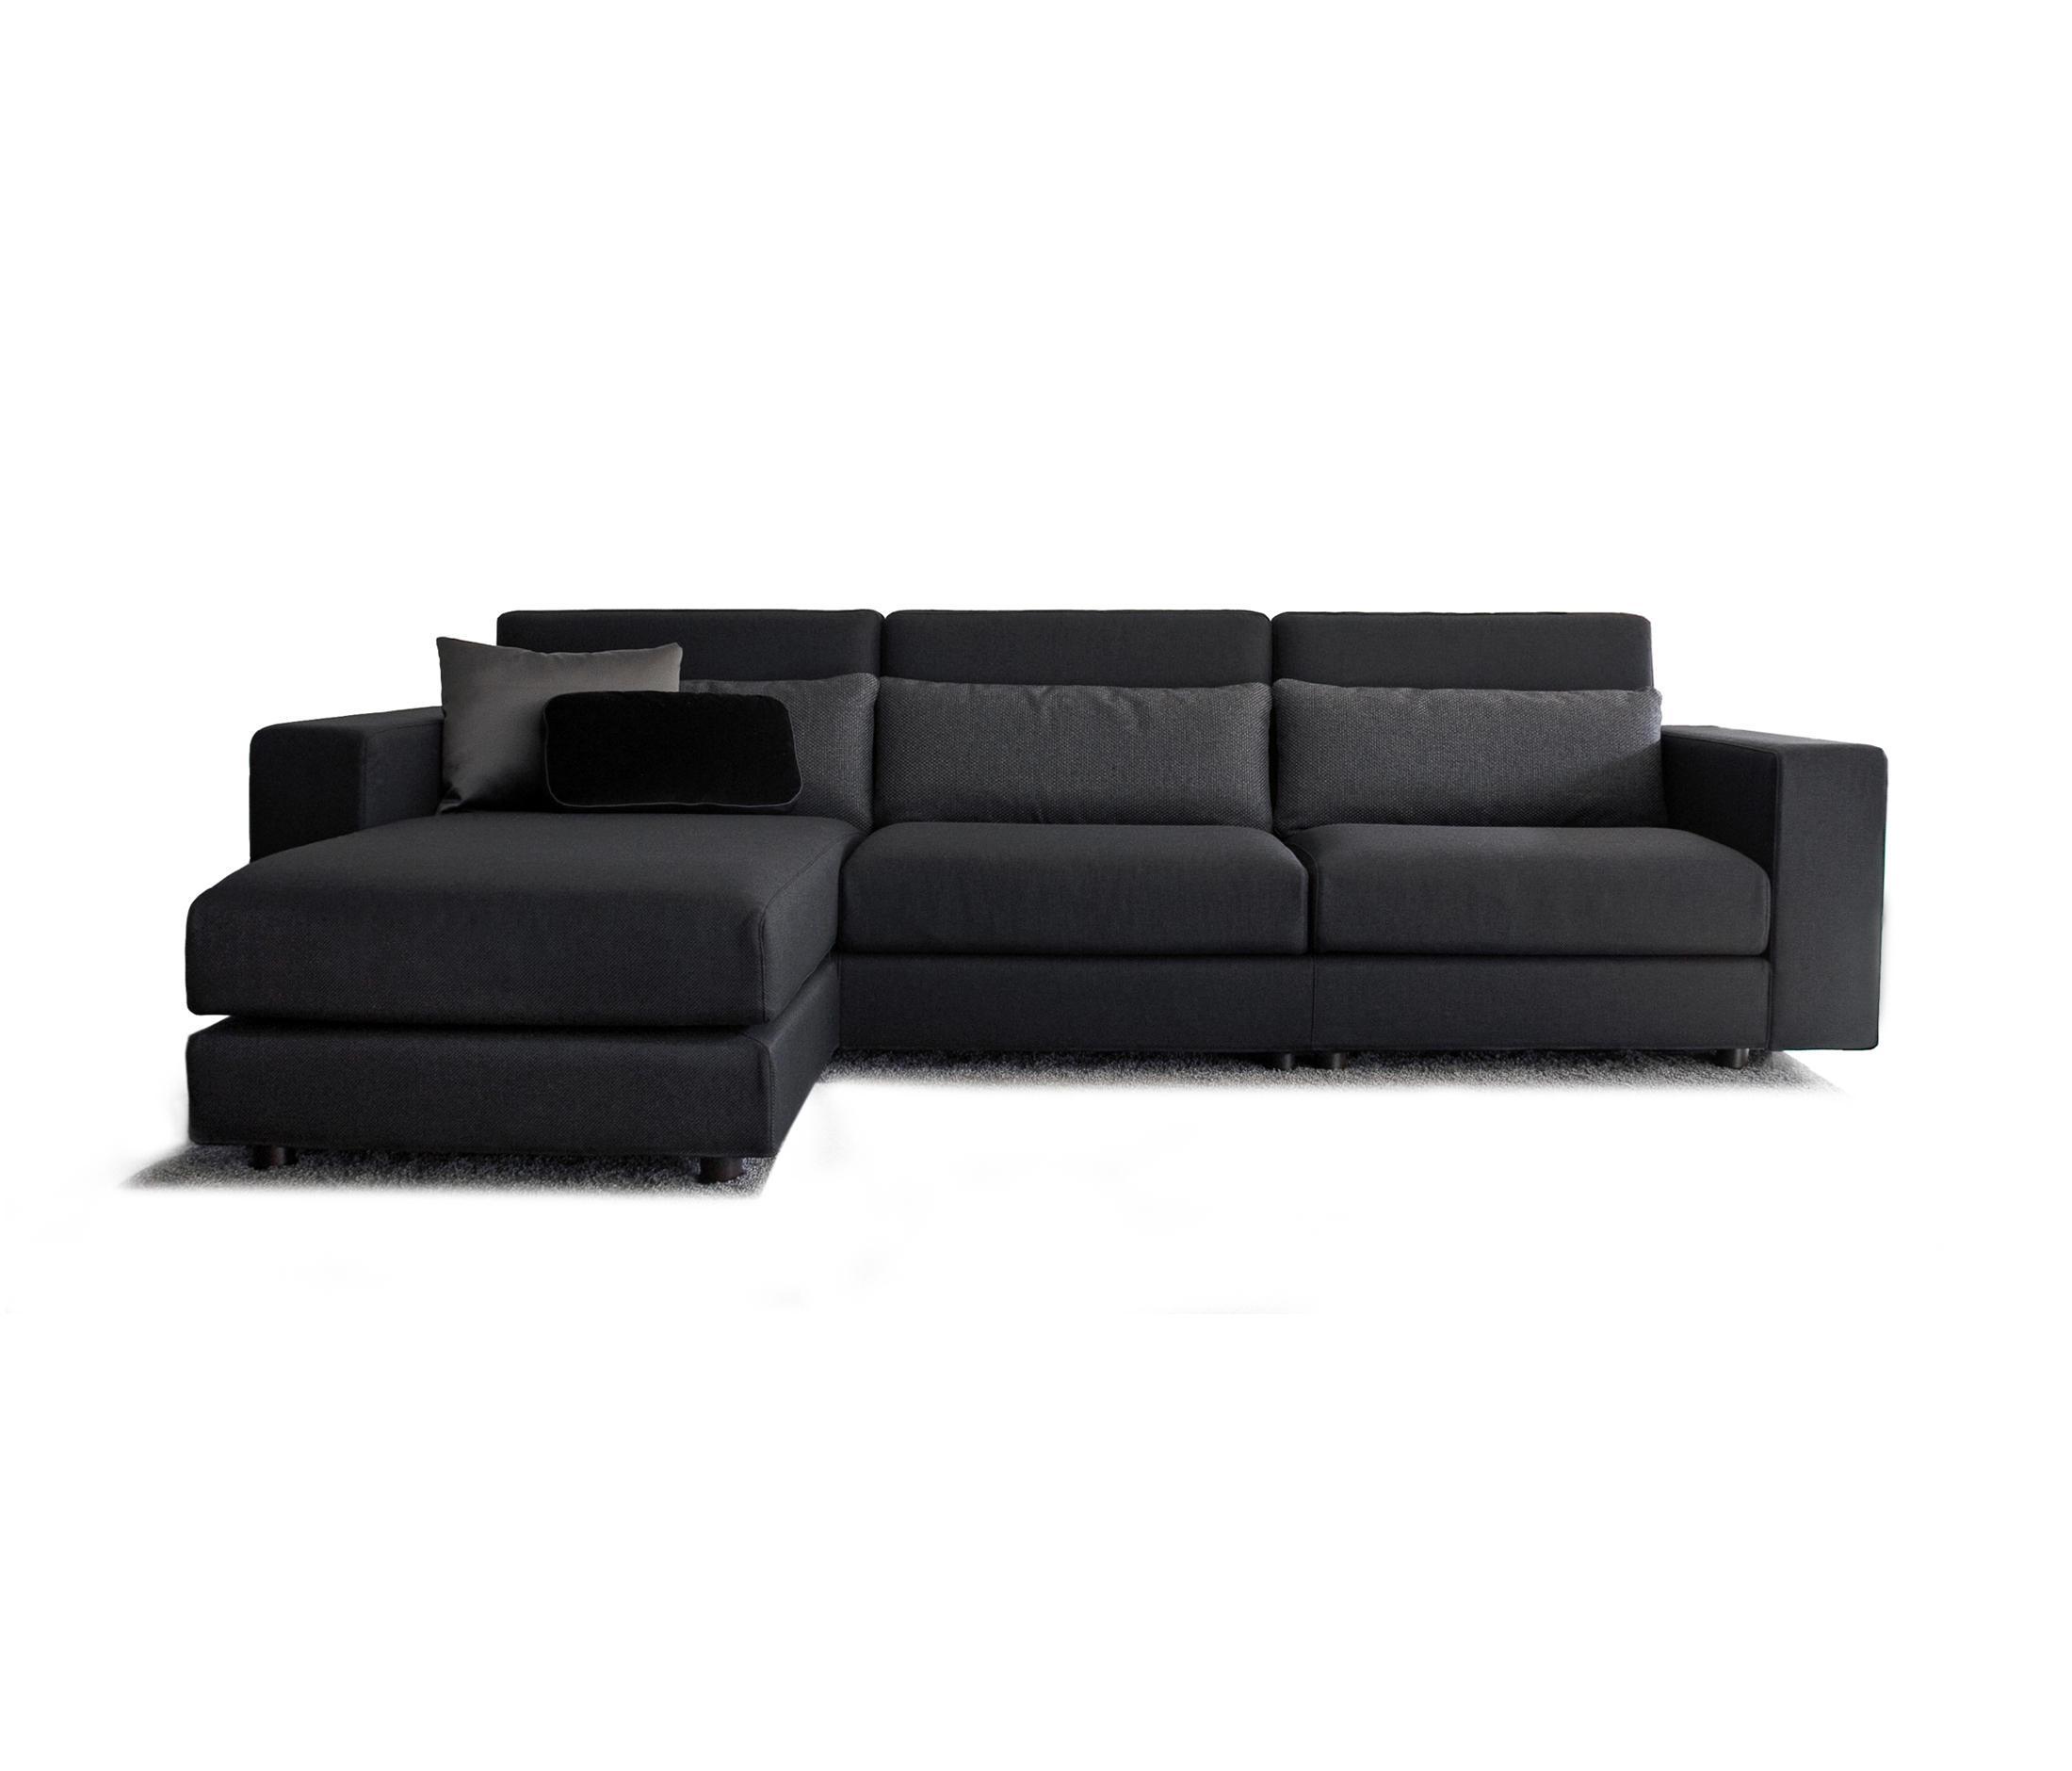 Mms Ideal Sofa By Groler Sofas